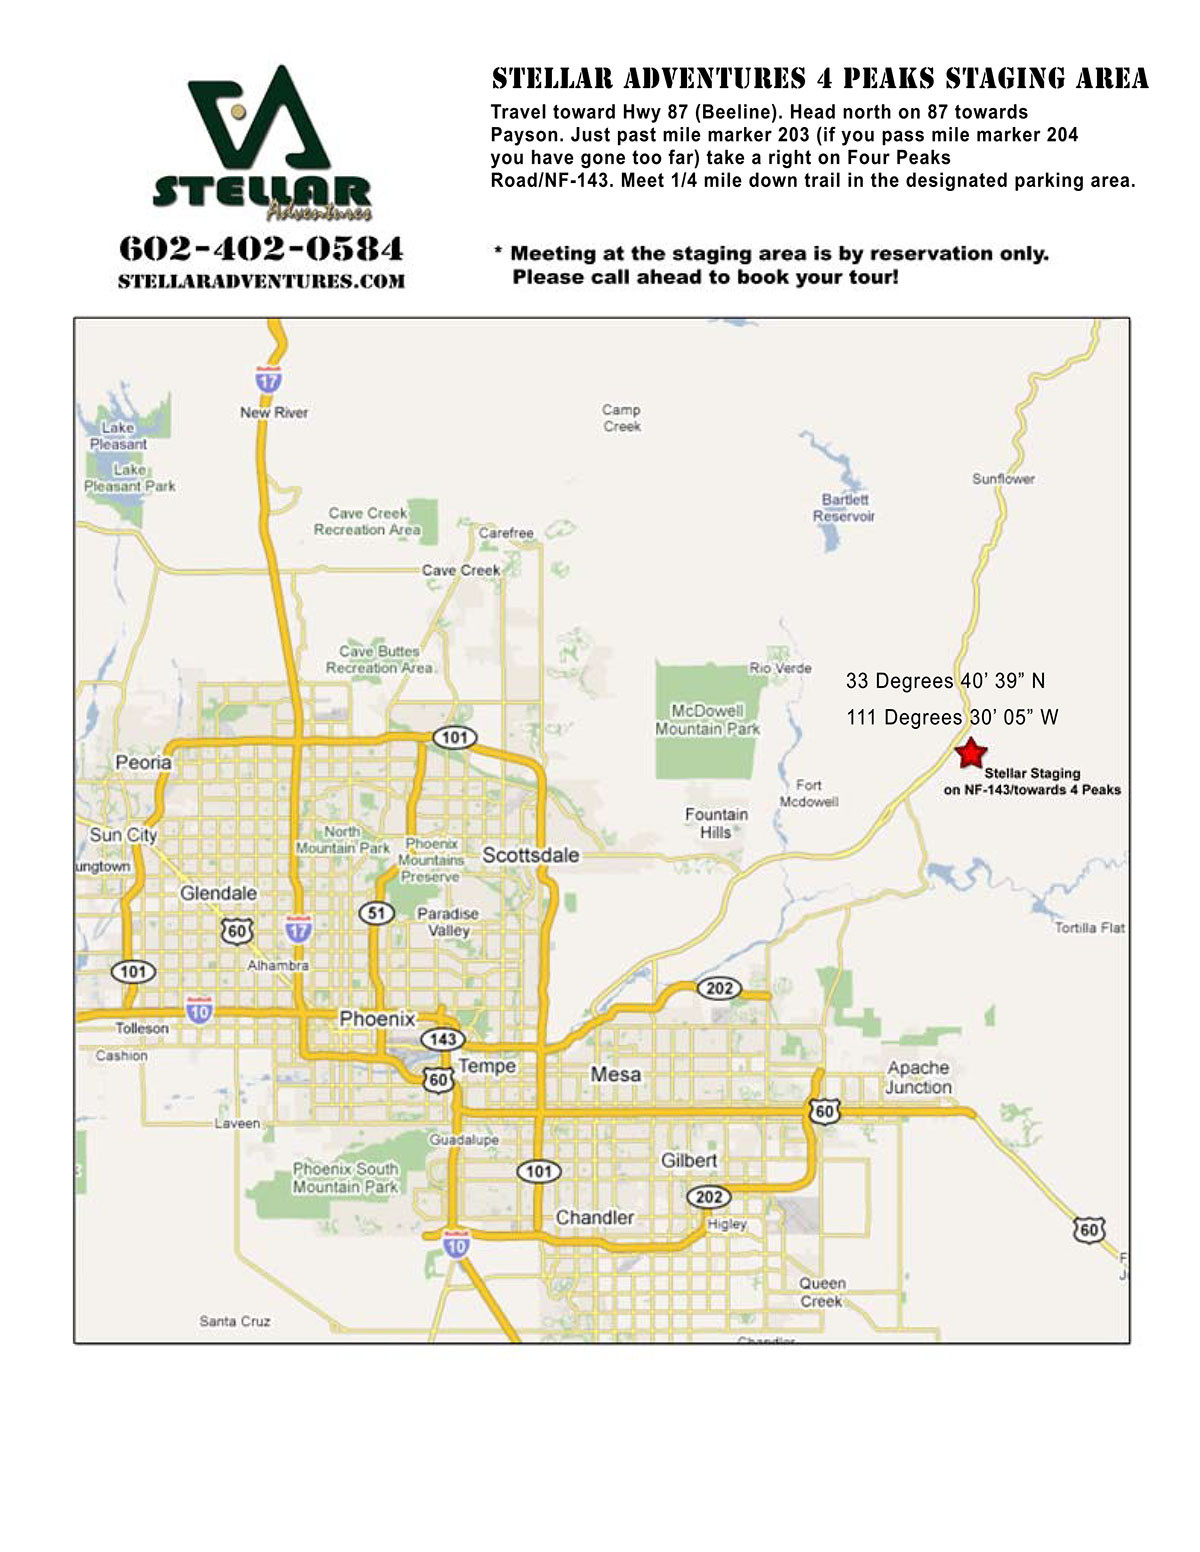 Printable Map and Driving Directions Best Of Maps Arizona F Road Adventure tours by Stellar Adventures